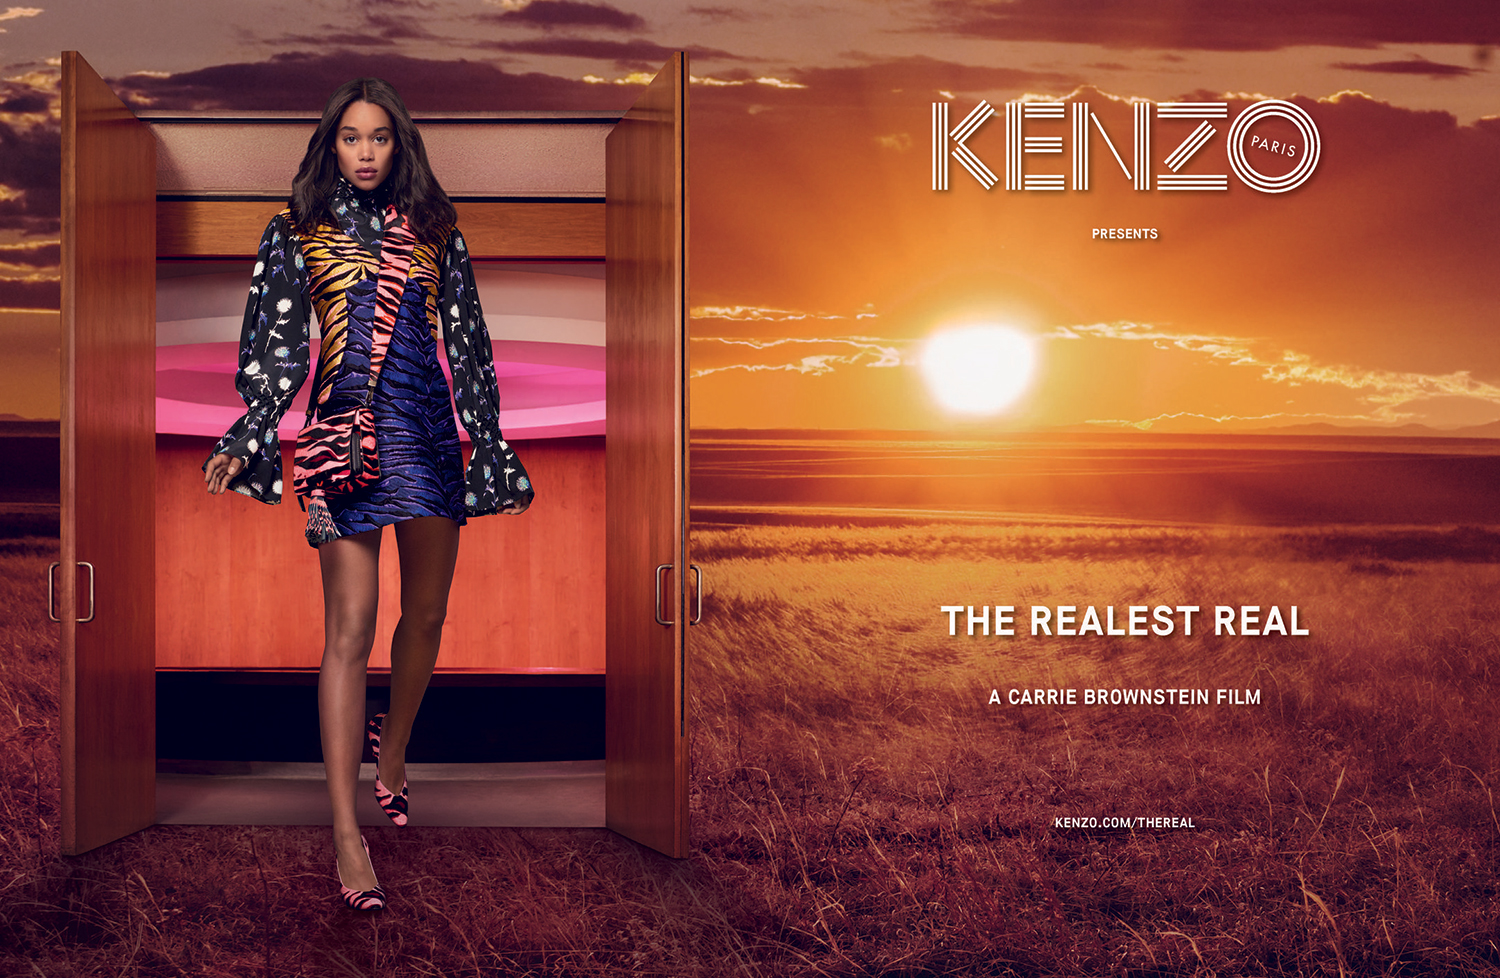 Kenzo - TRENDS periodical